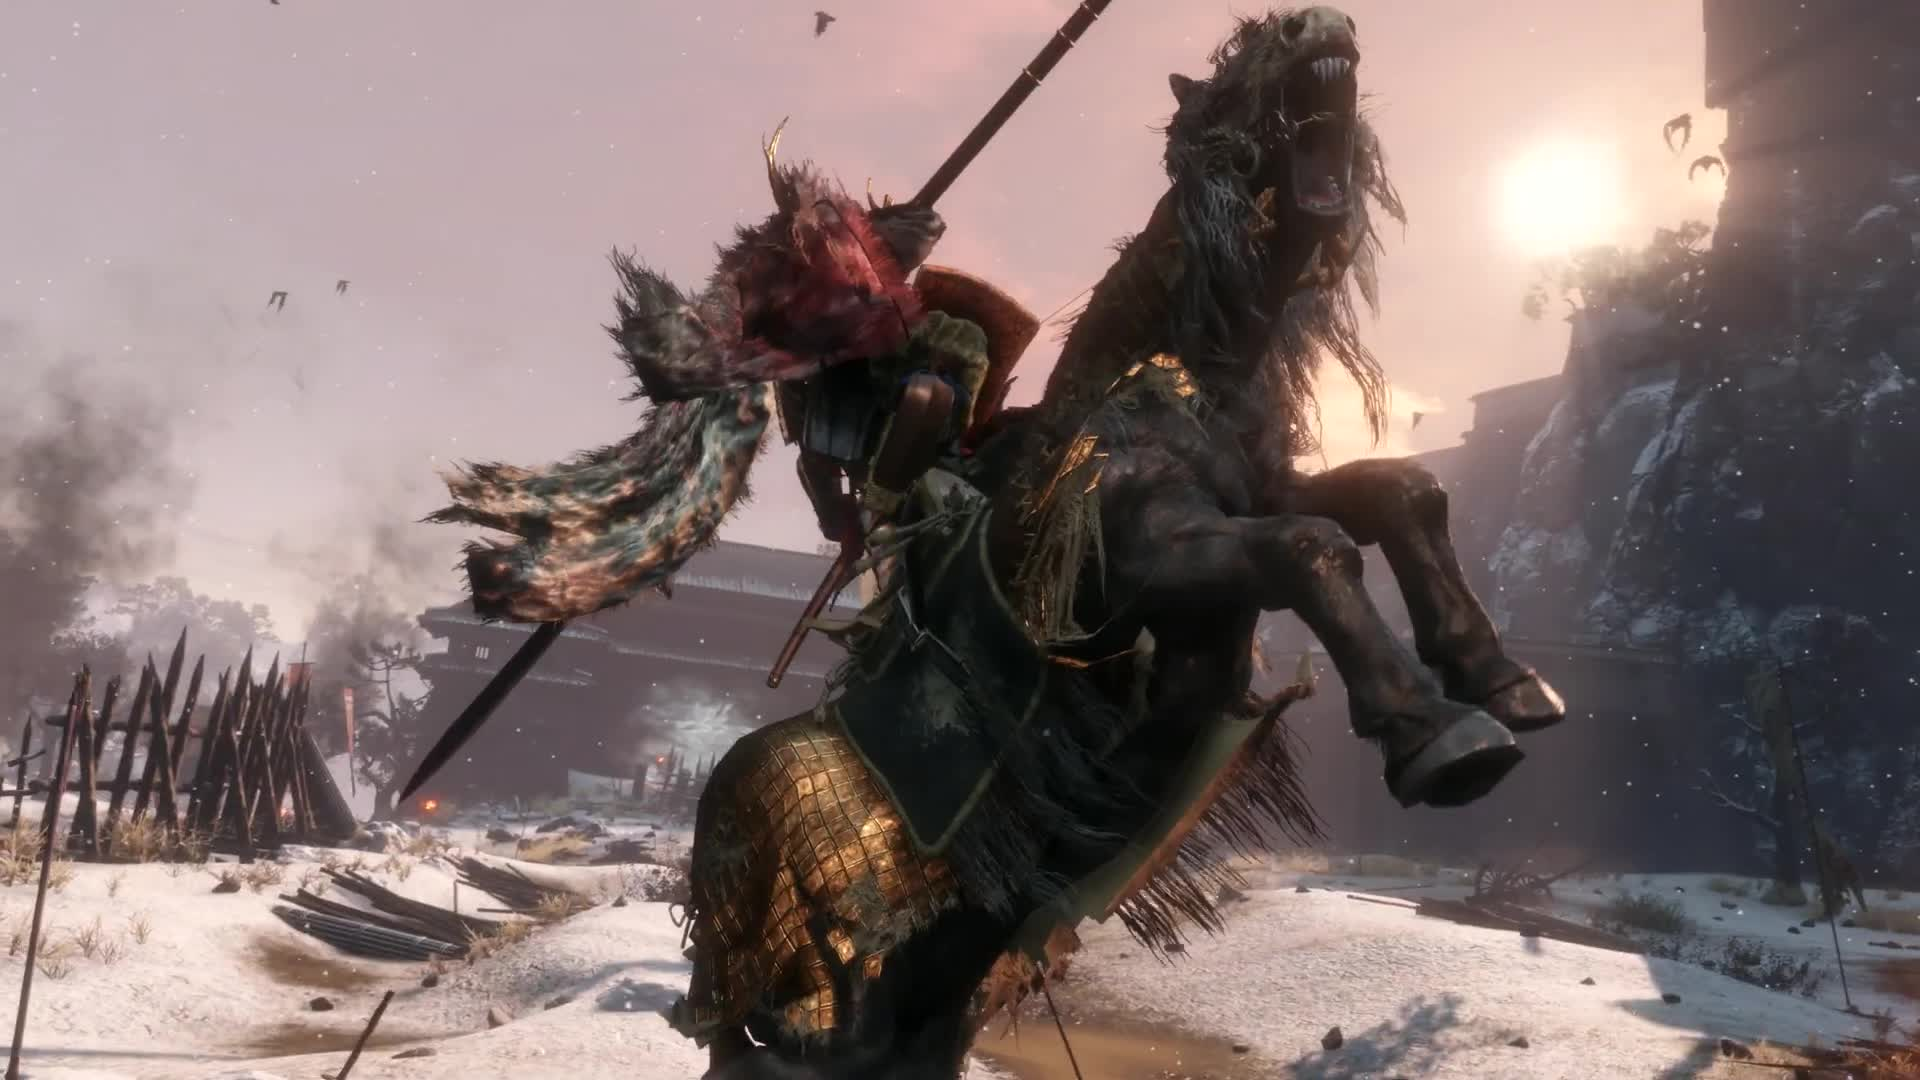 Trailer, Activision, From Software, Sekiro, Shadows die Twice, Sekiro: Shadows die Twice